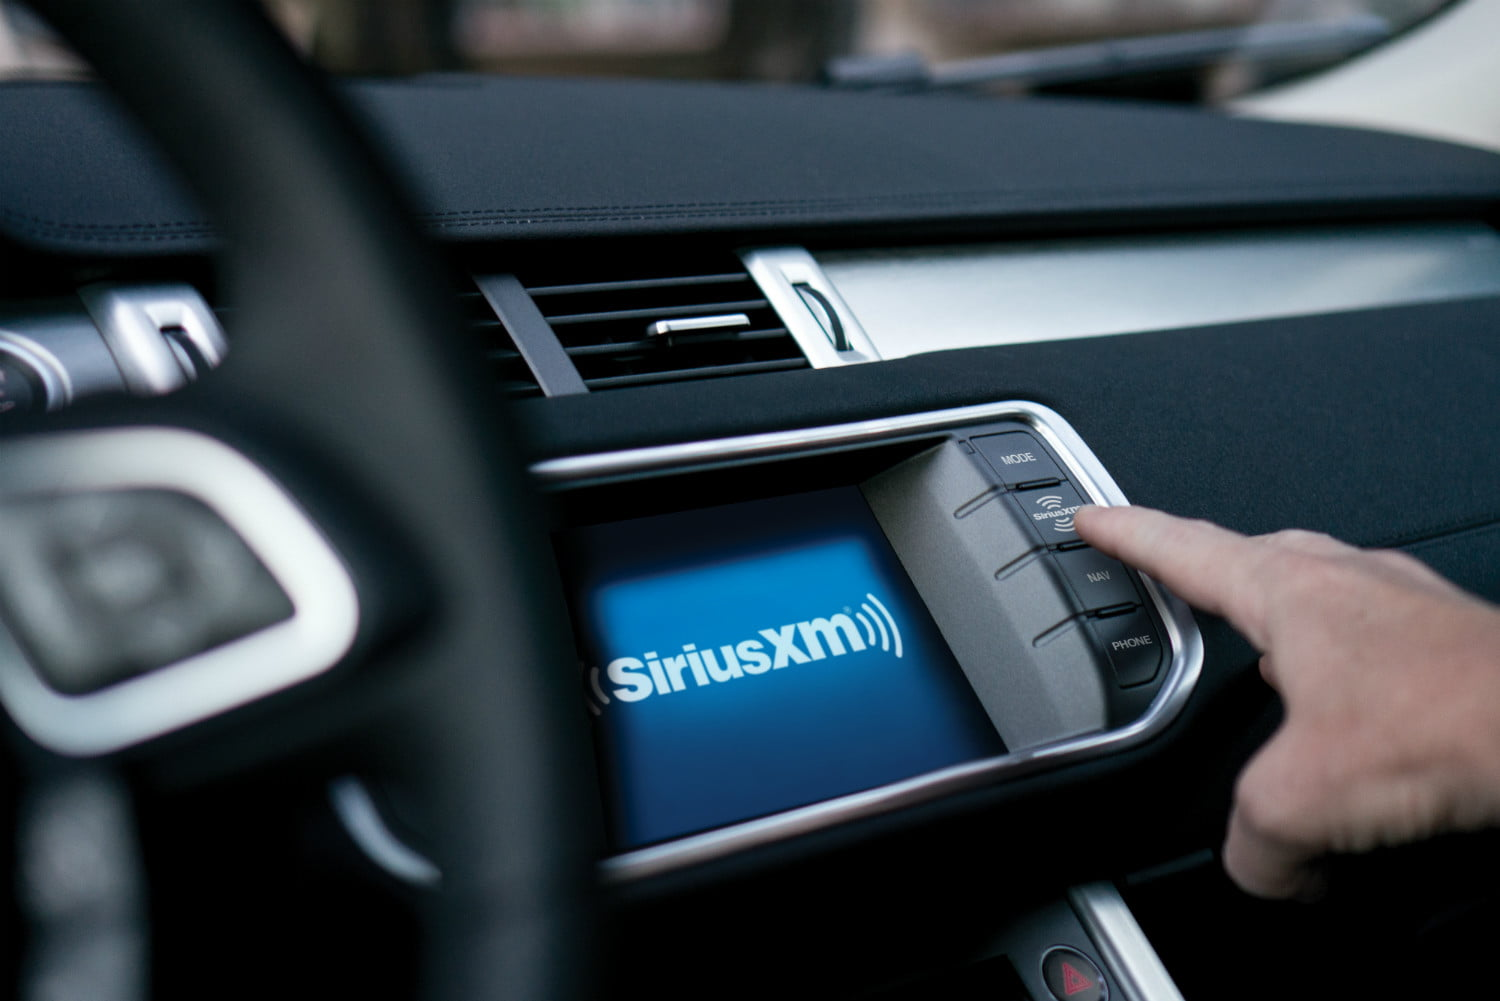 SiriusXM's $8 a Month Streaming Plan Has Everything but